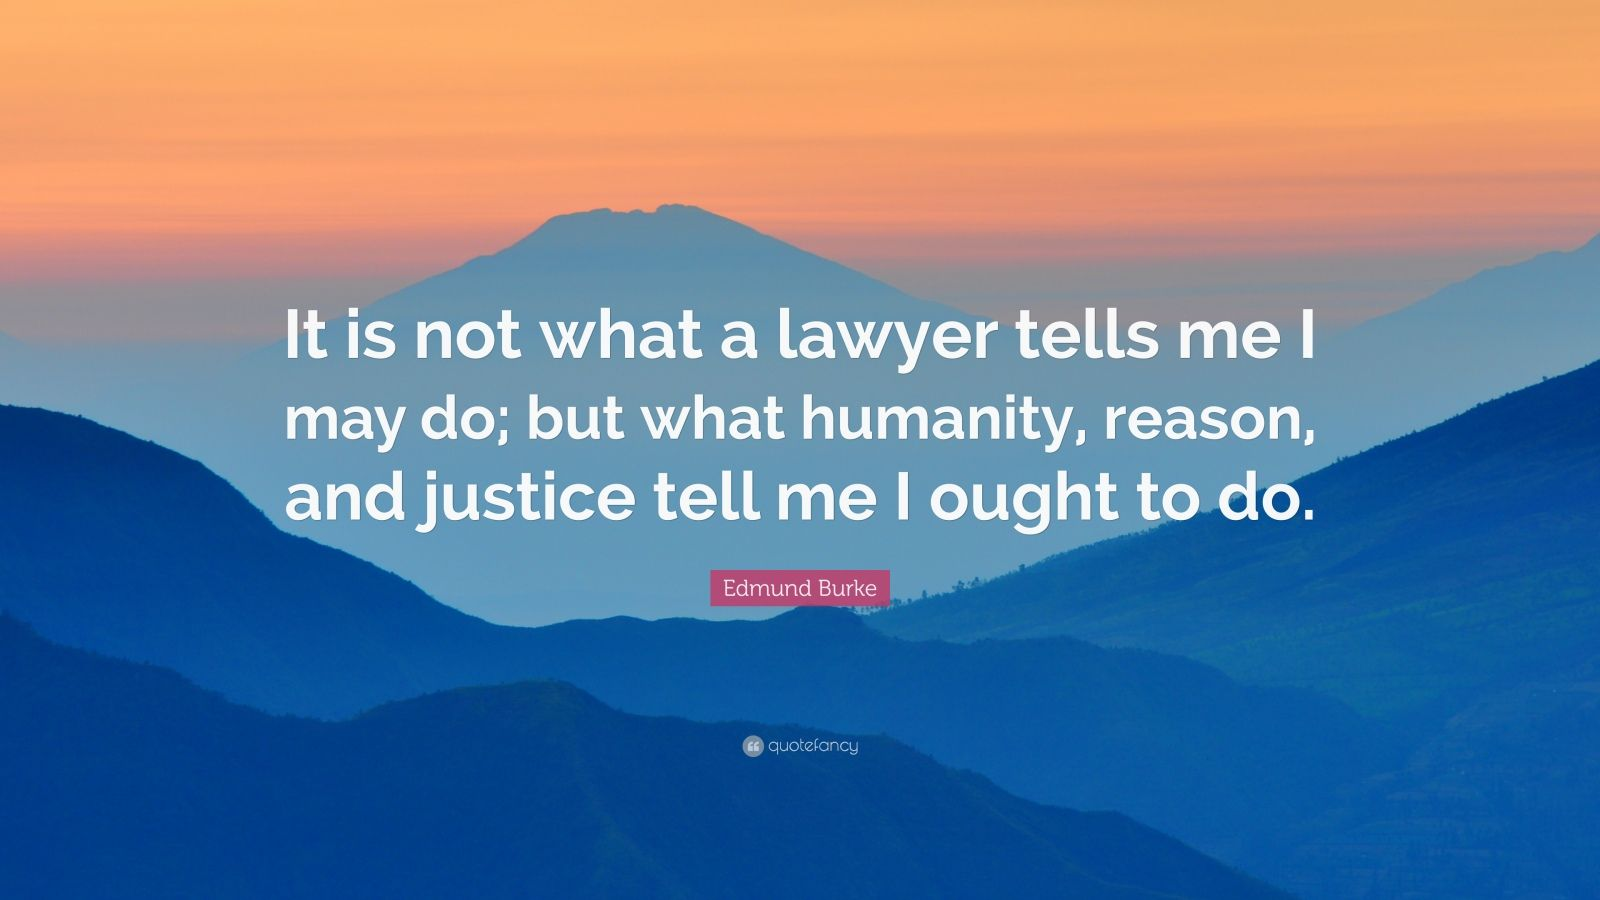 """Edmund Burke Quote: """"It is not what a lawyer tells me I may do; but what humanity, reason, and justice tell me I ought to do."""""""